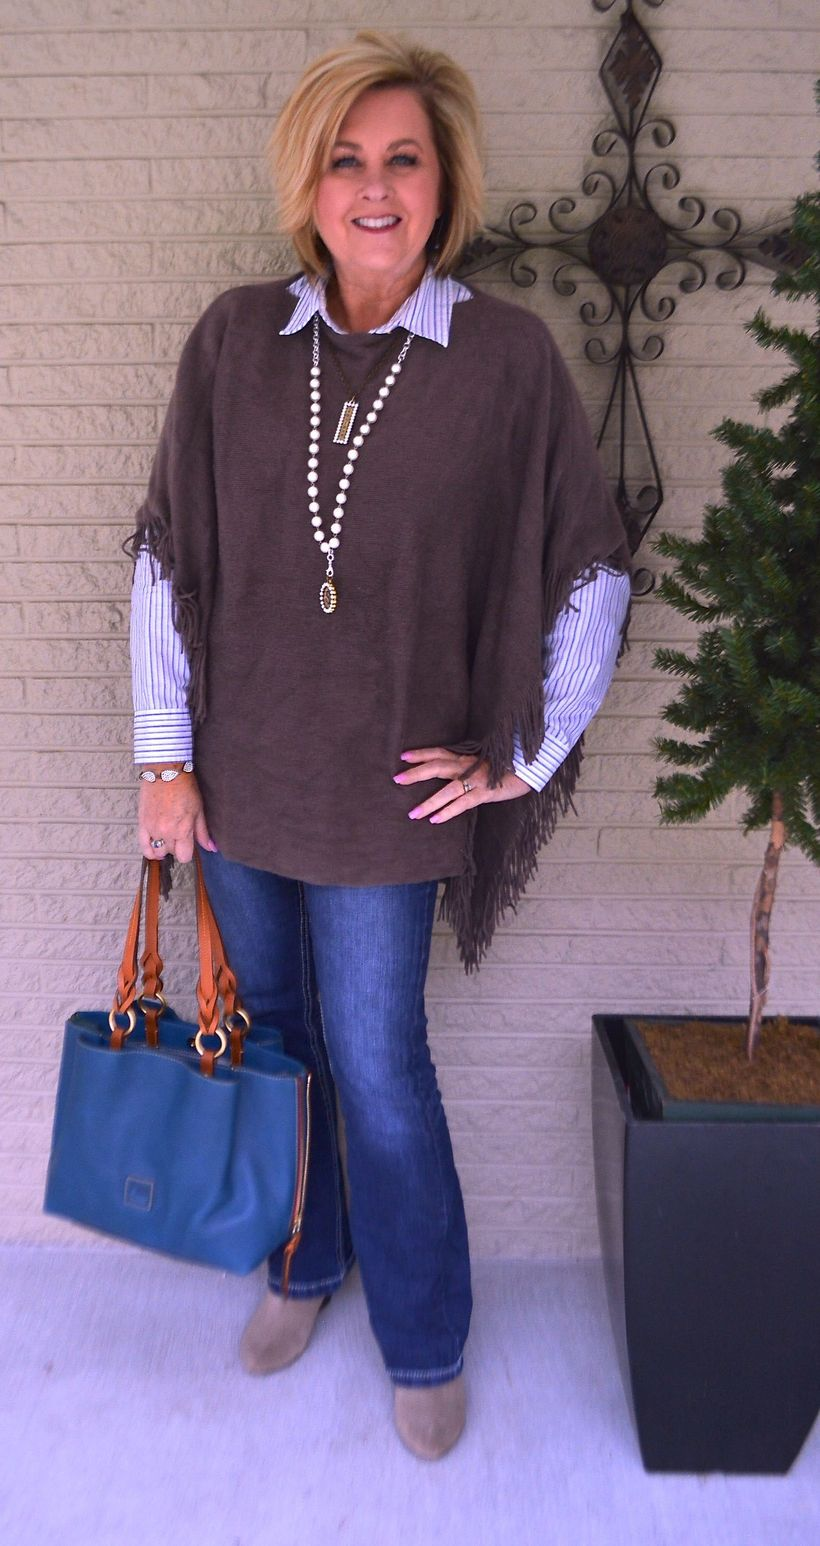 Fashionable over 50 fall outfits ideas 76 - Fashion Best